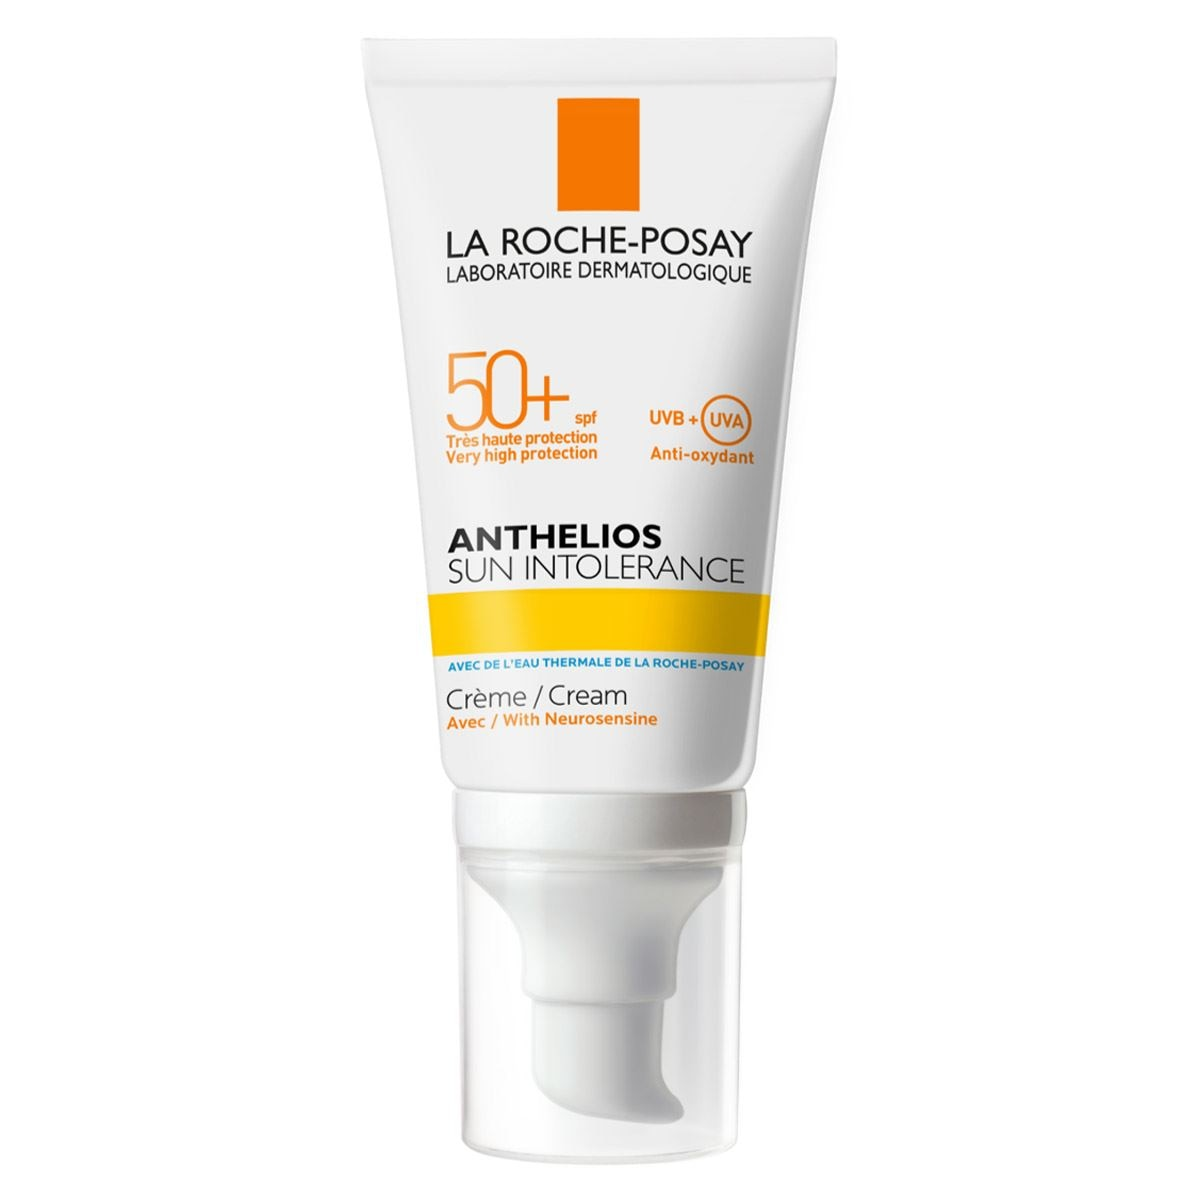 Anthelios Sun Intolerance Con Fps 50+ De 50 ml